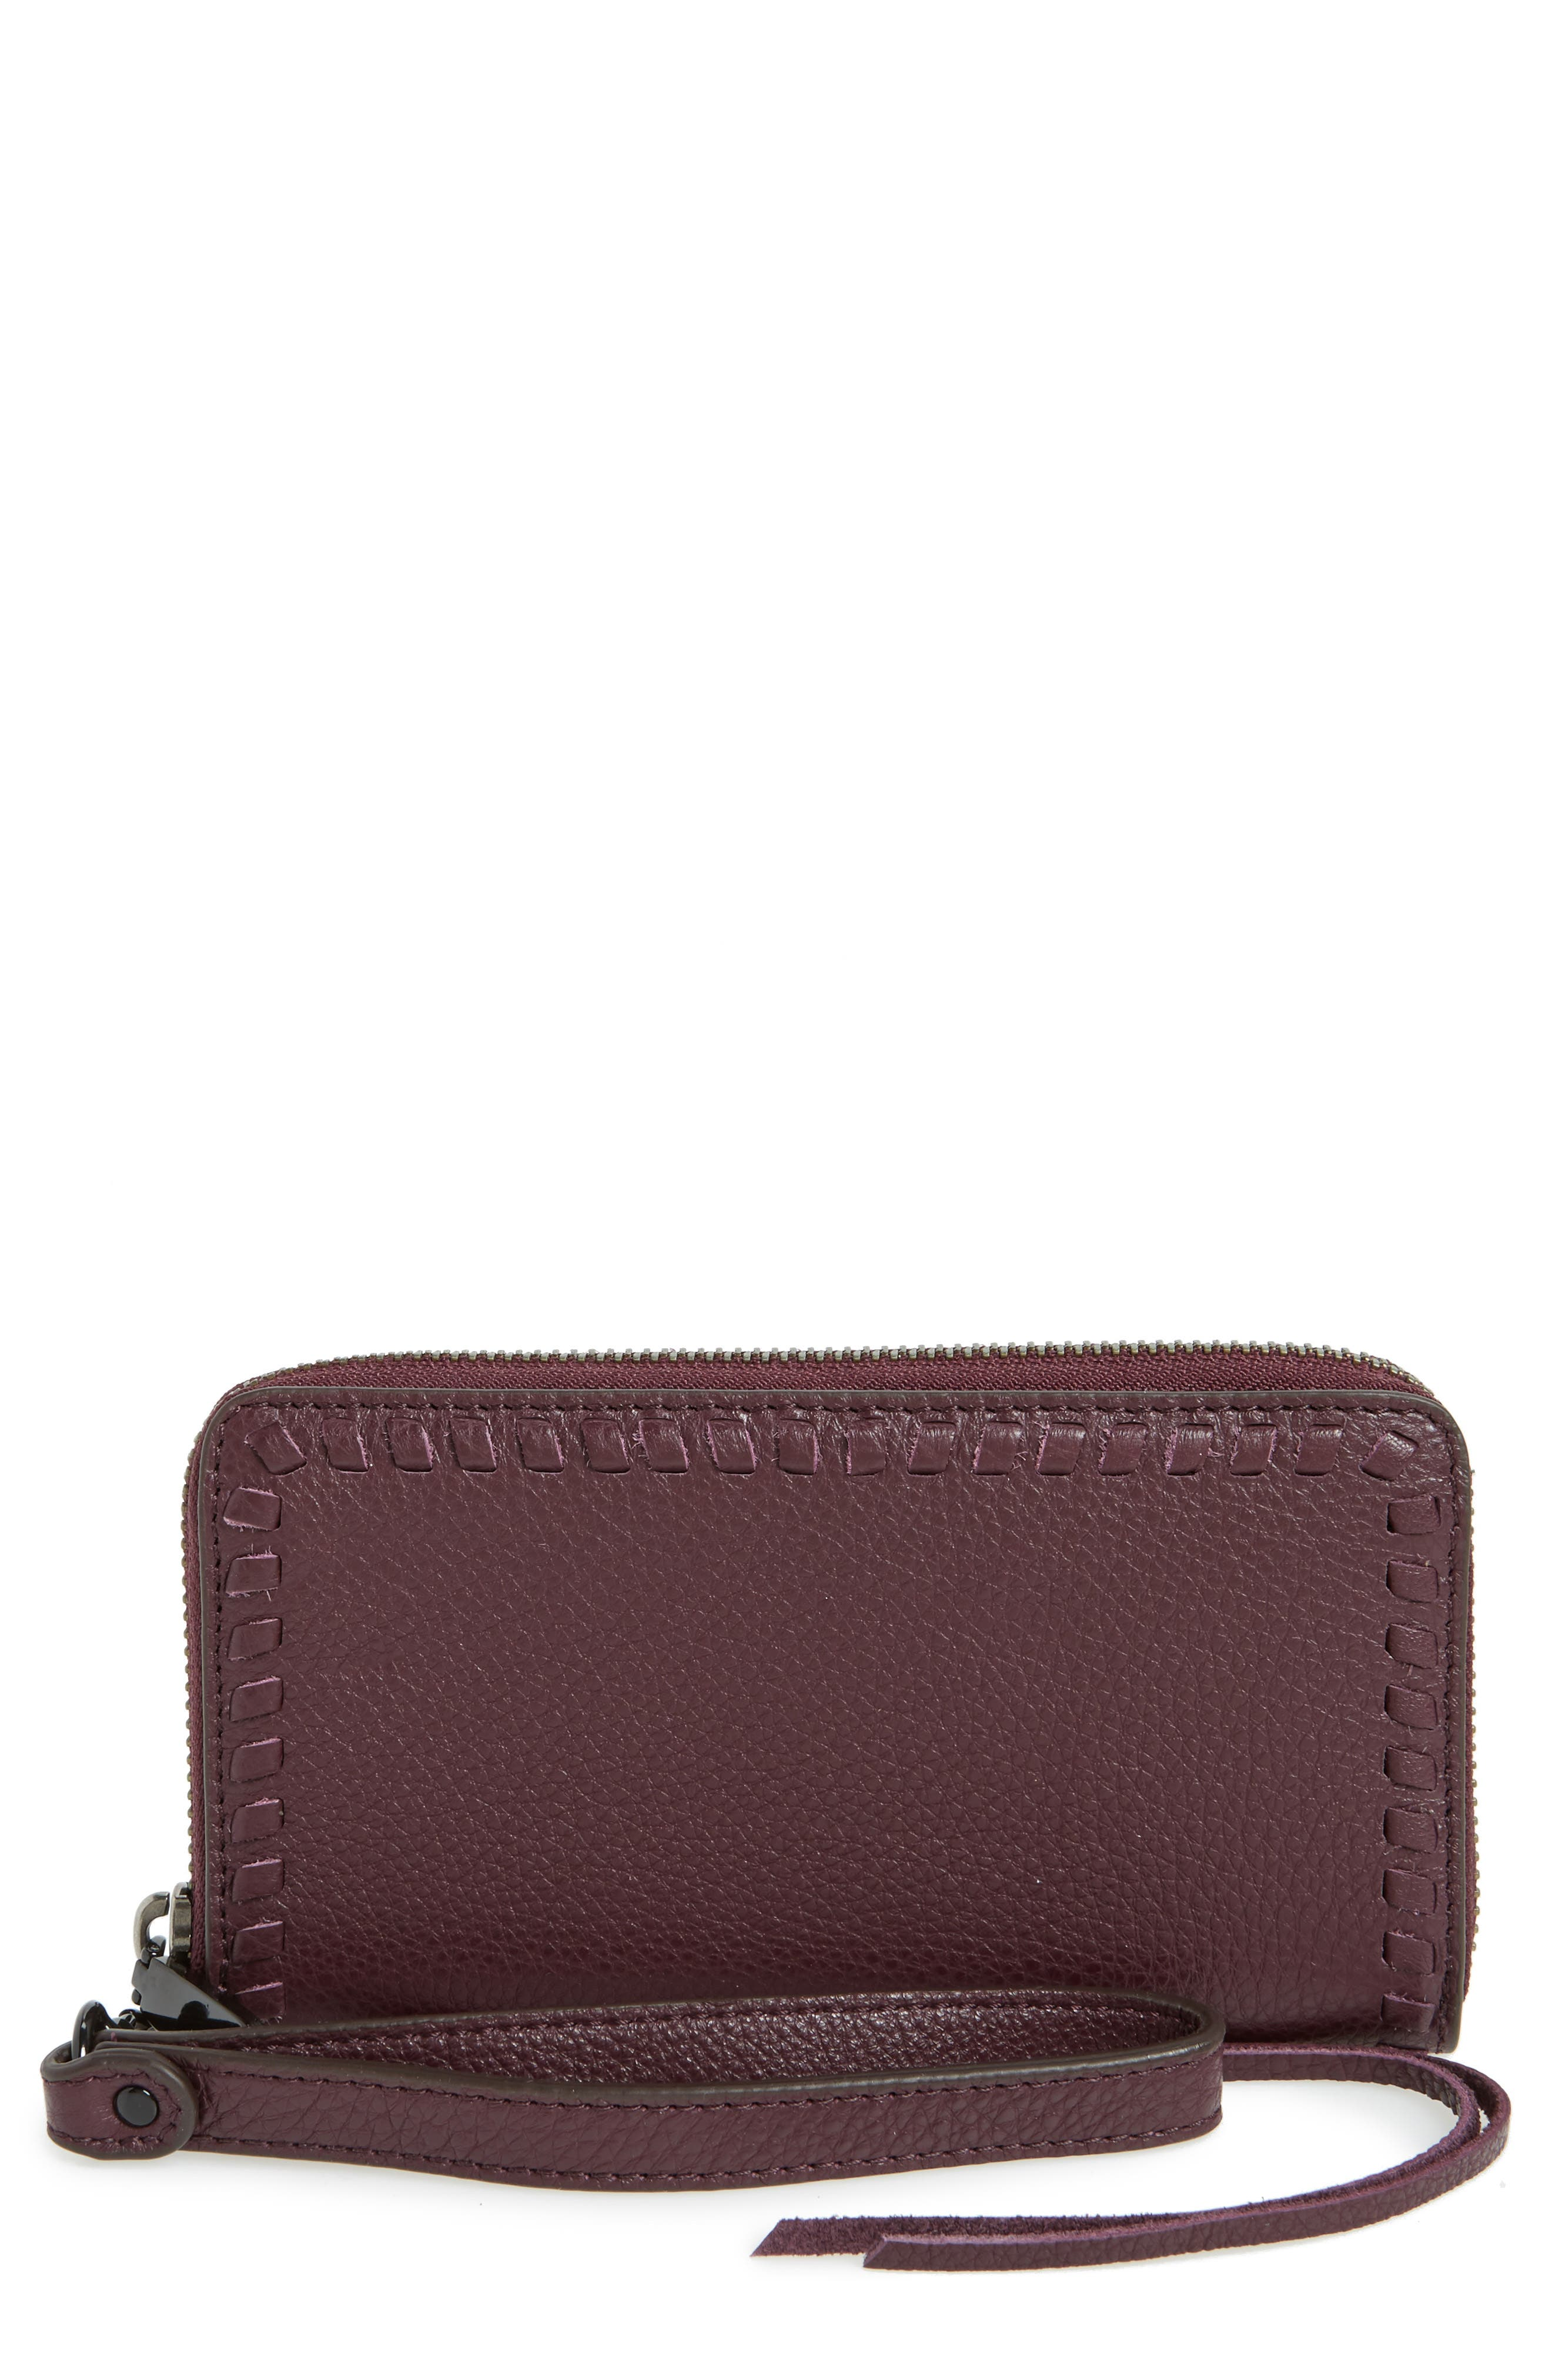 Vanity Leather Smartphone Wristlet,                             Main thumbnail 1, color,                             610